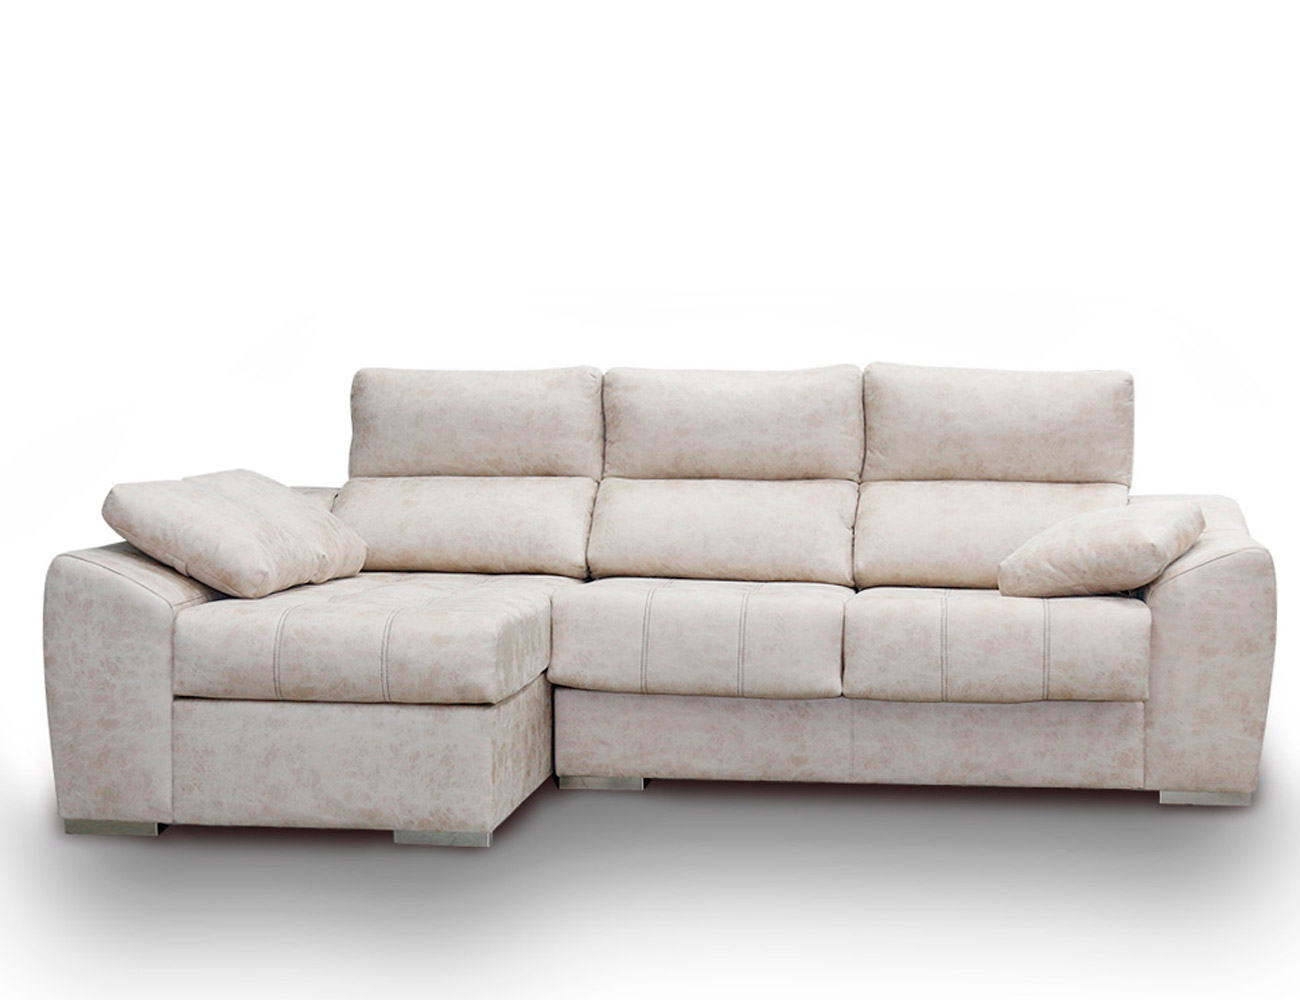 Sofa chaiselongue anti manchas beig blanco15